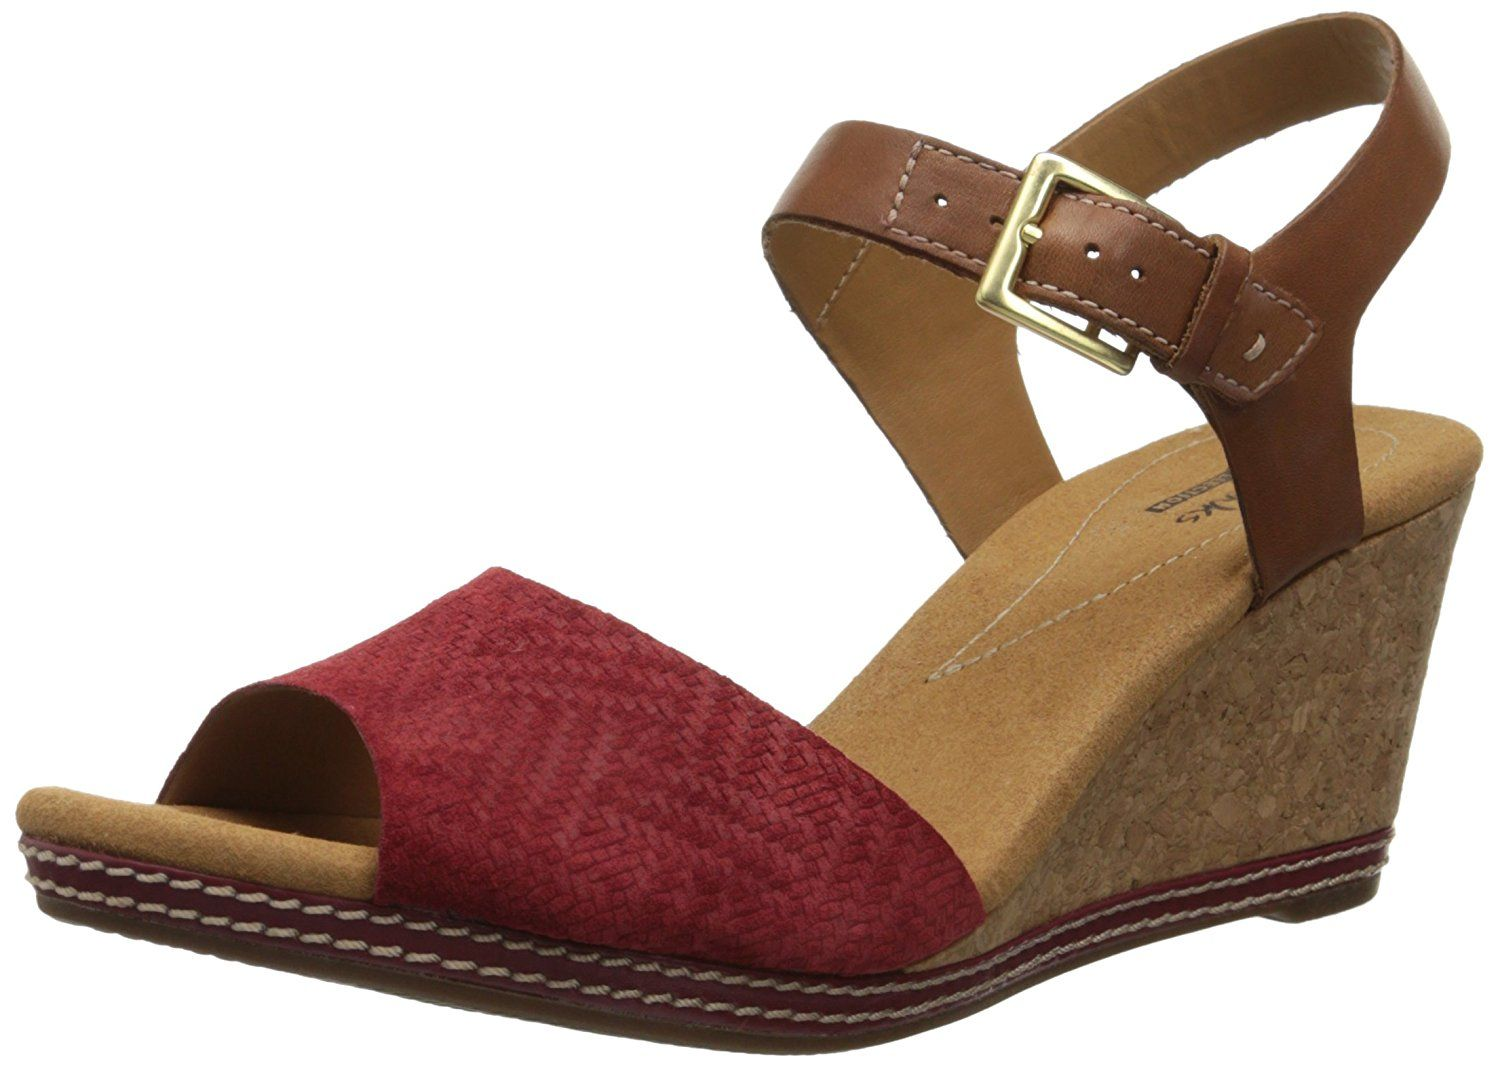 28f2b6c9f77c00 Clarks Women s Helio Jet Wedge Sandal     Quickly view this special  product